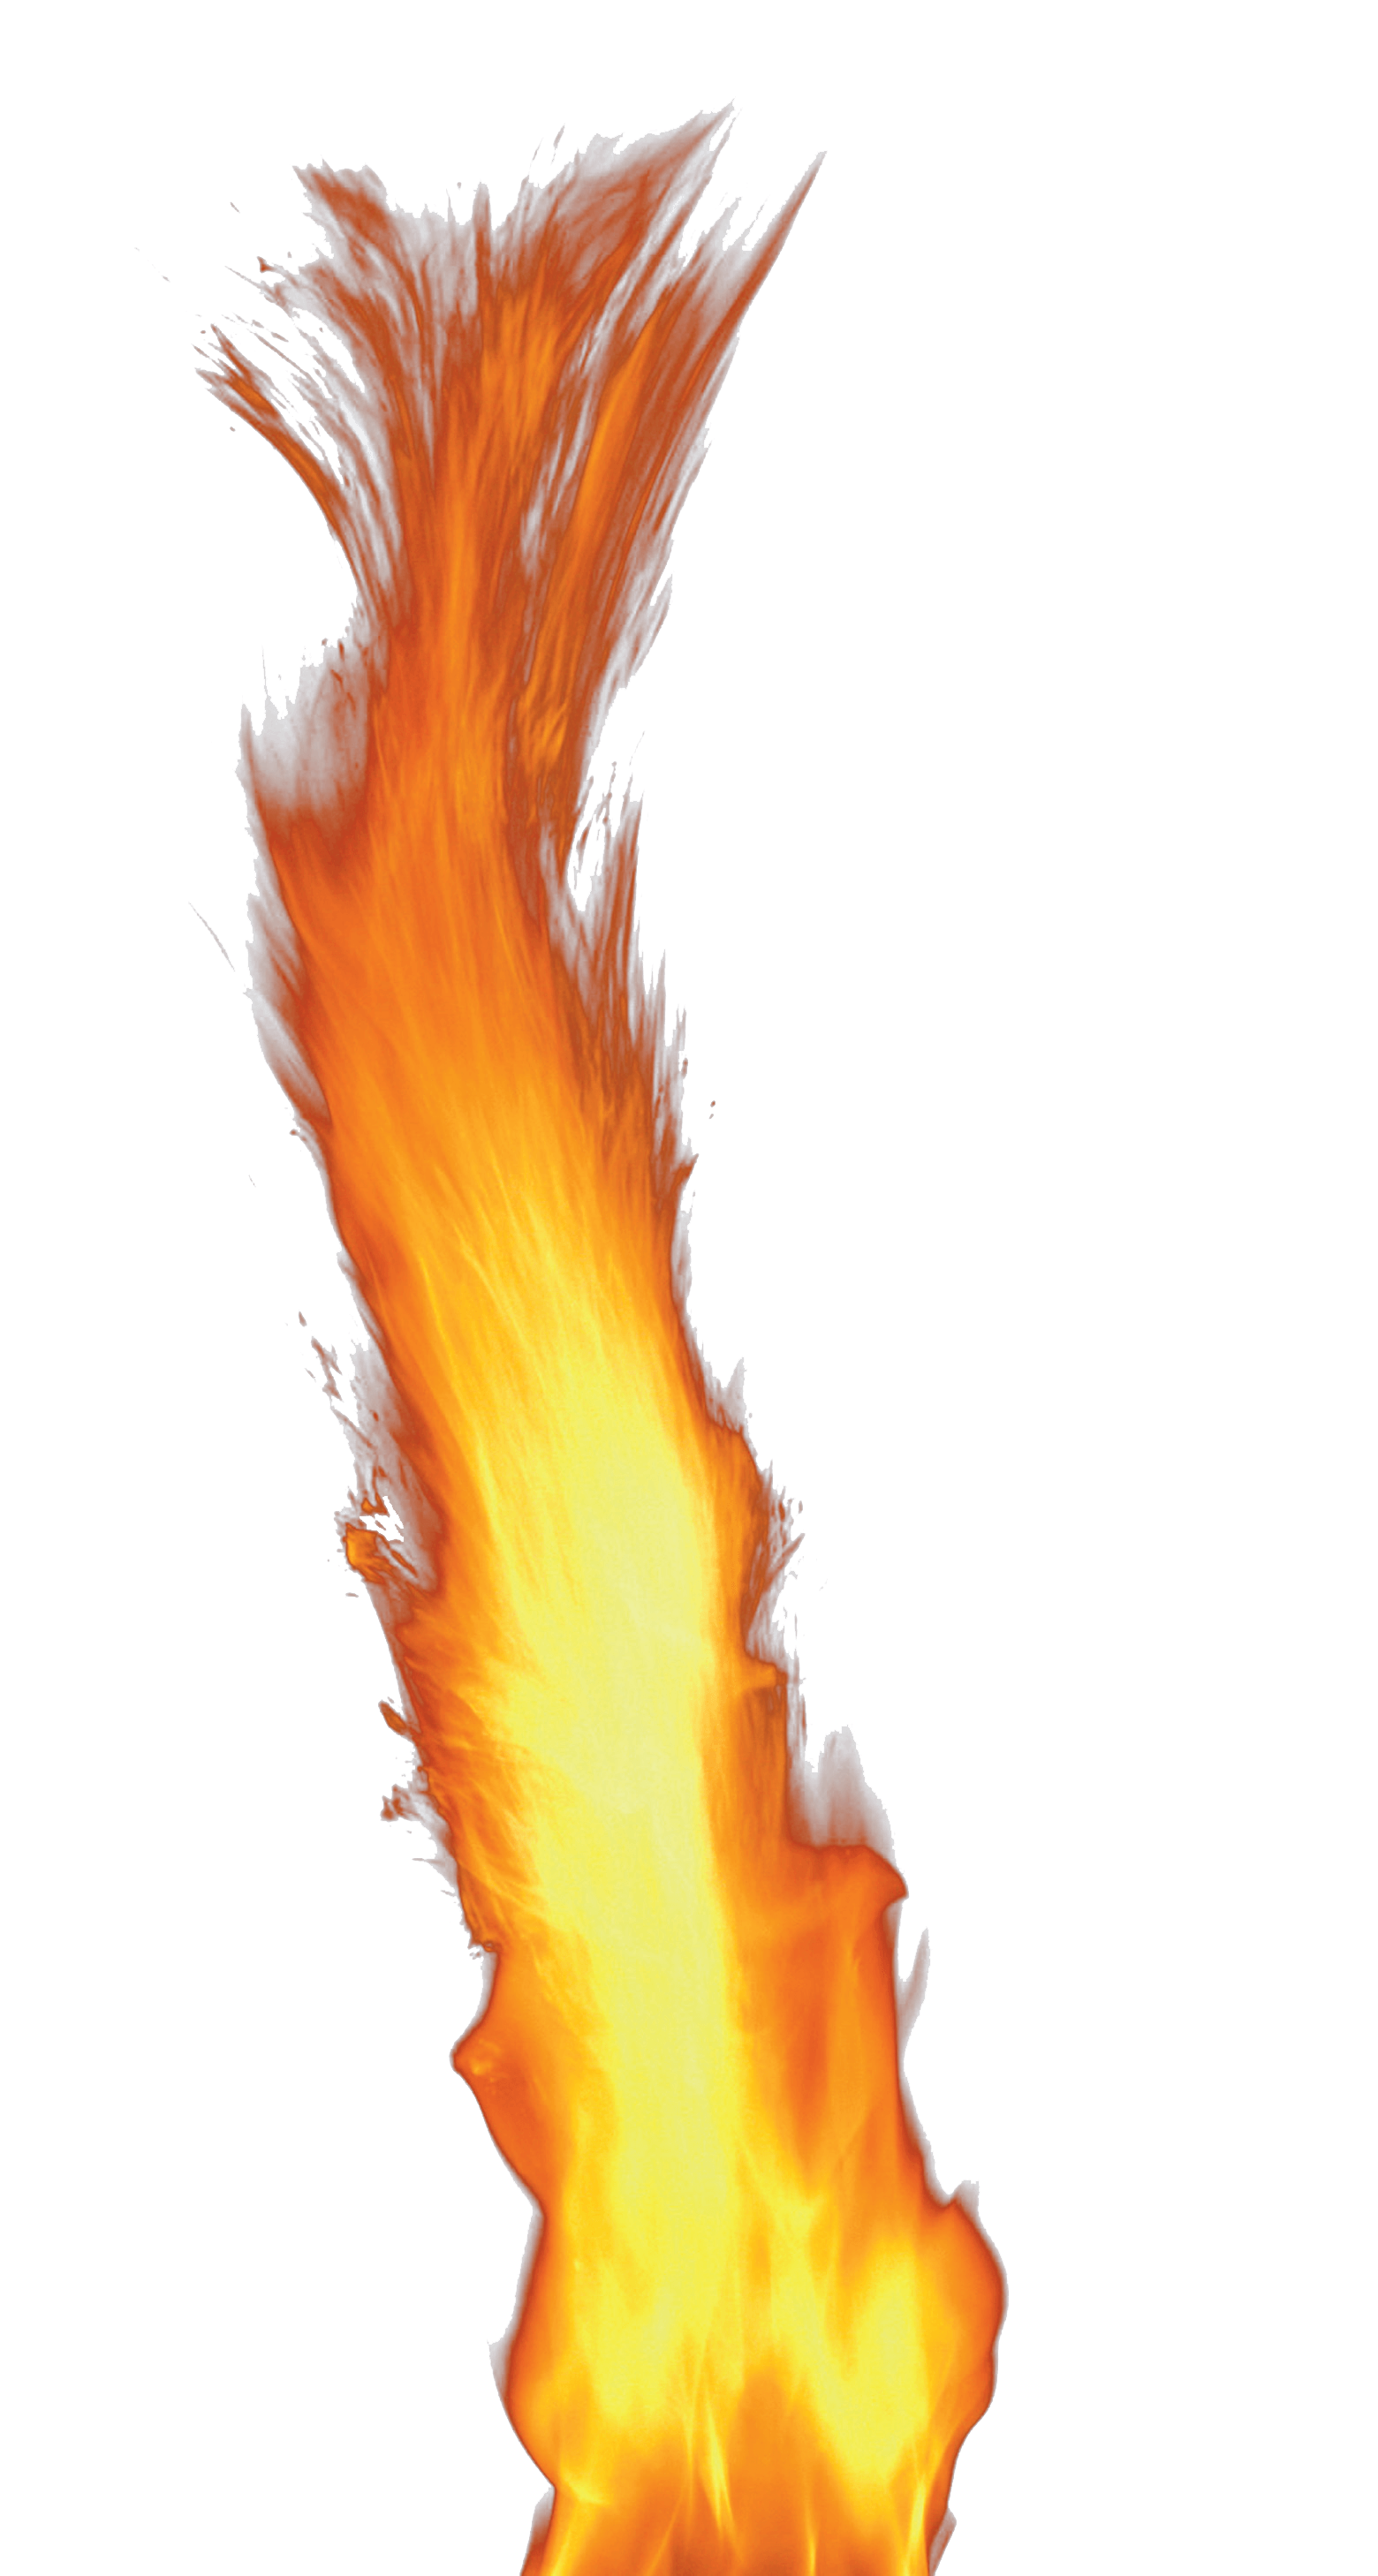 Fire transparent png stickpng. Flame clipart single flame